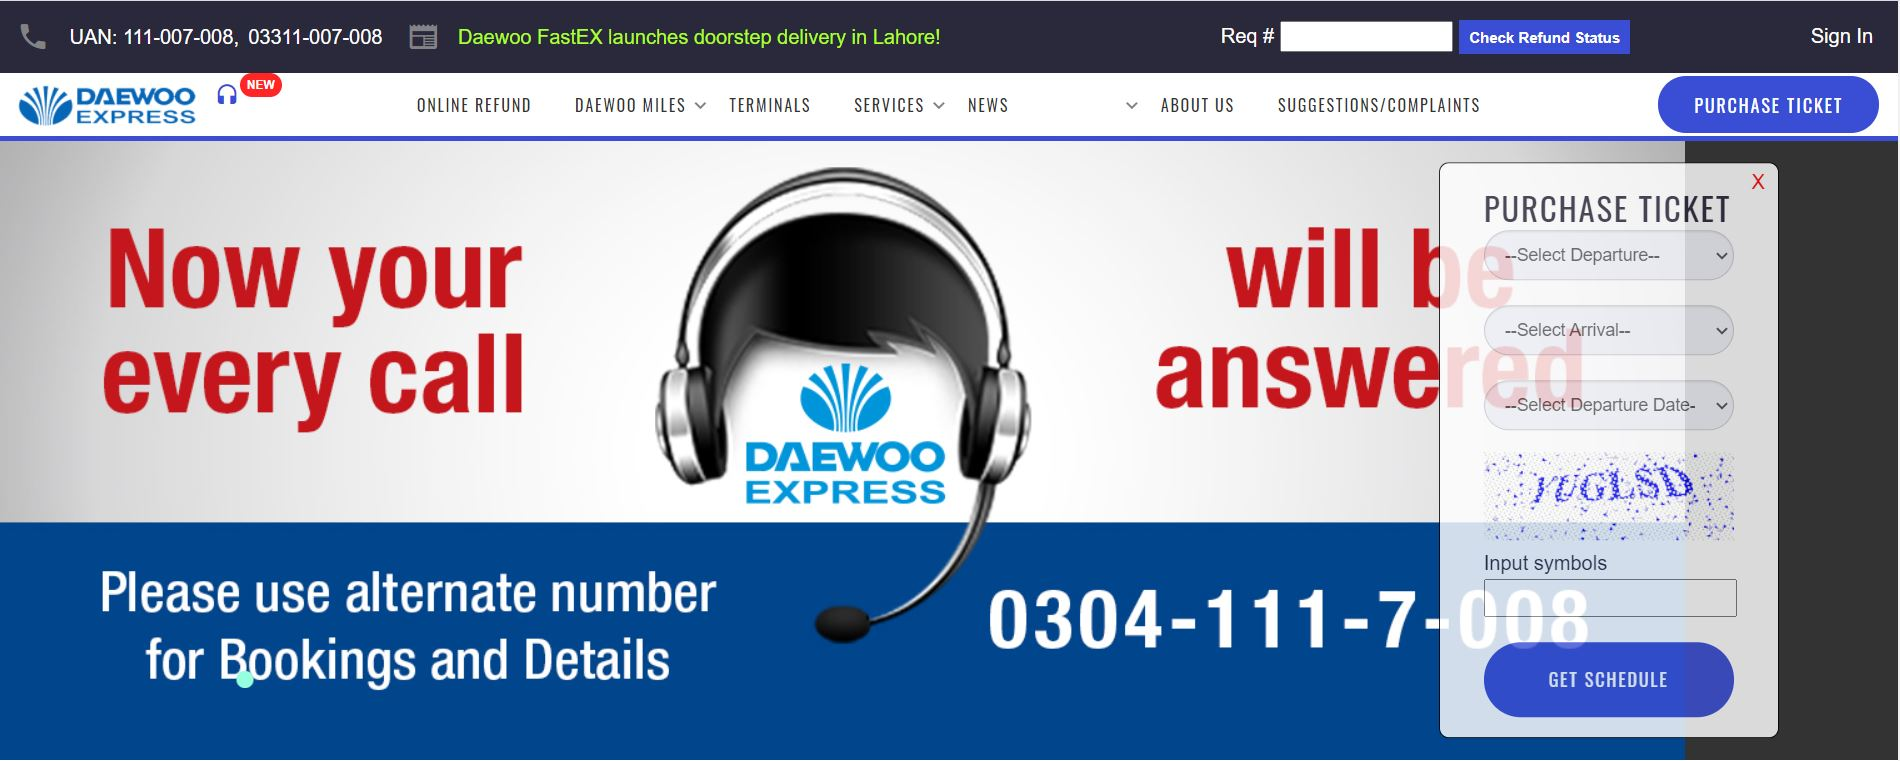 daewoo express online booking website